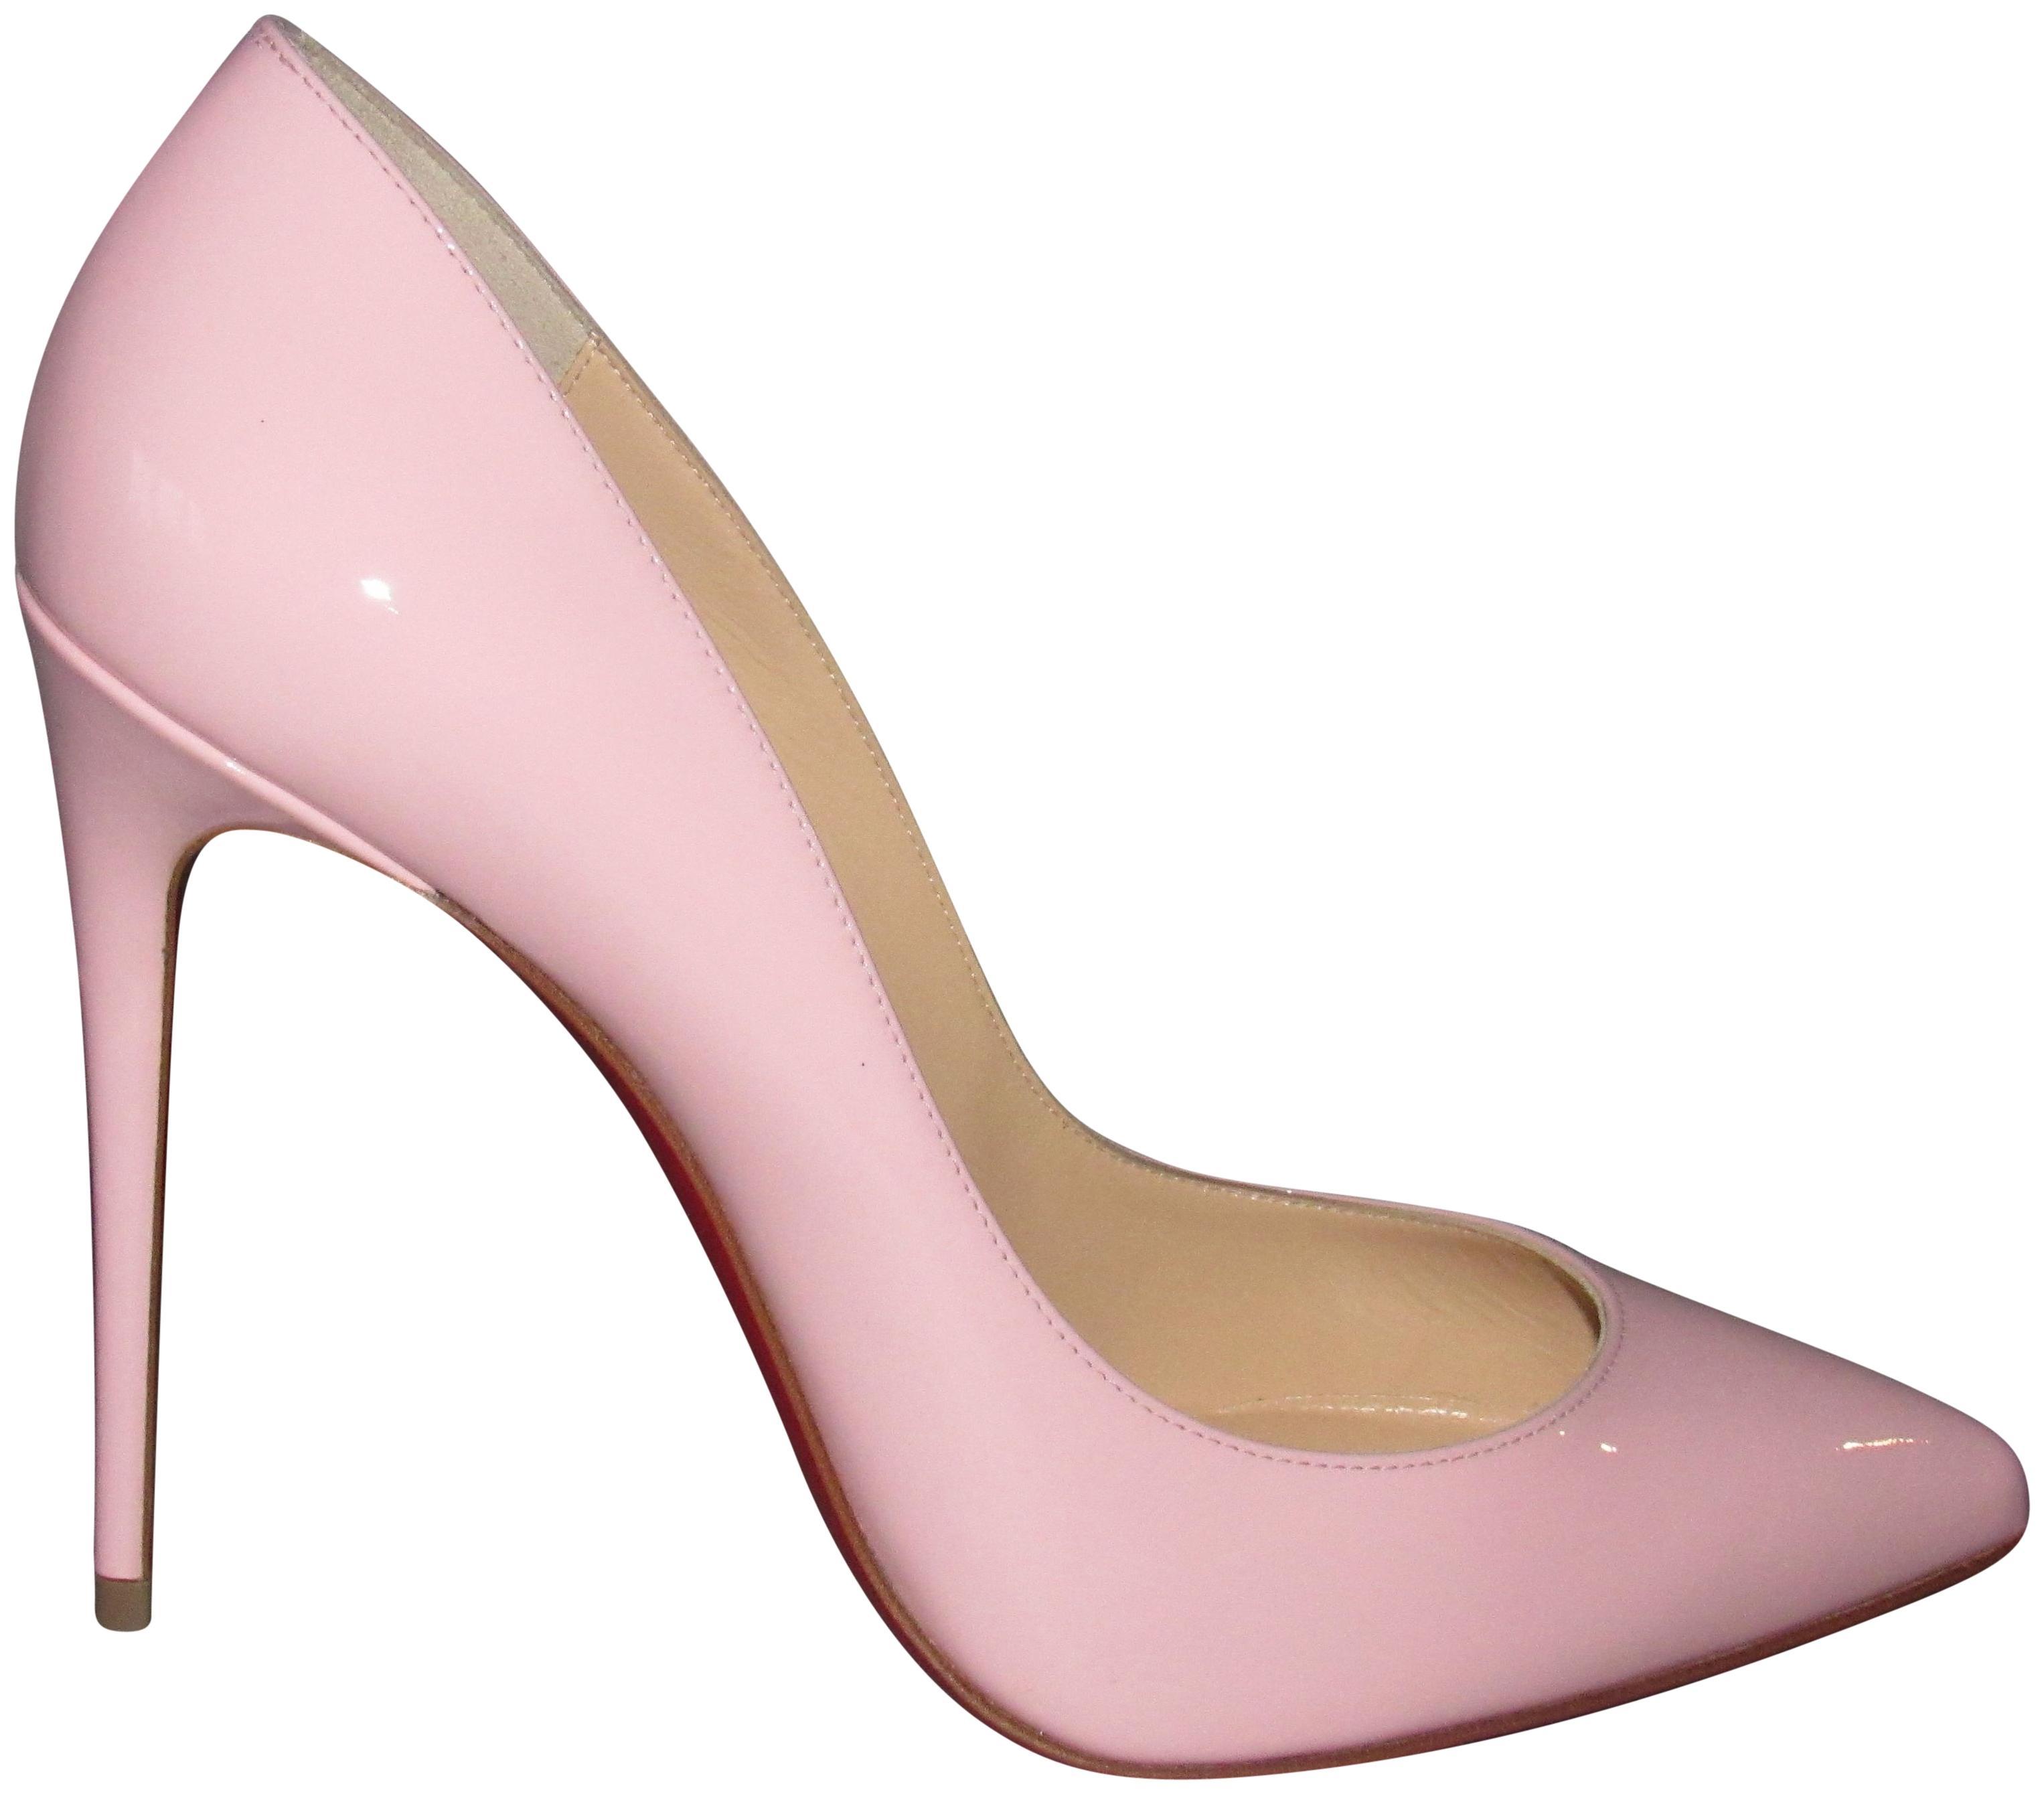 Christian Louboutin Pink / Pampadour New Pigalle Follies 100 Patent Classic Pumps Size EU 40 (Approx. US 10) Regular (M, B)